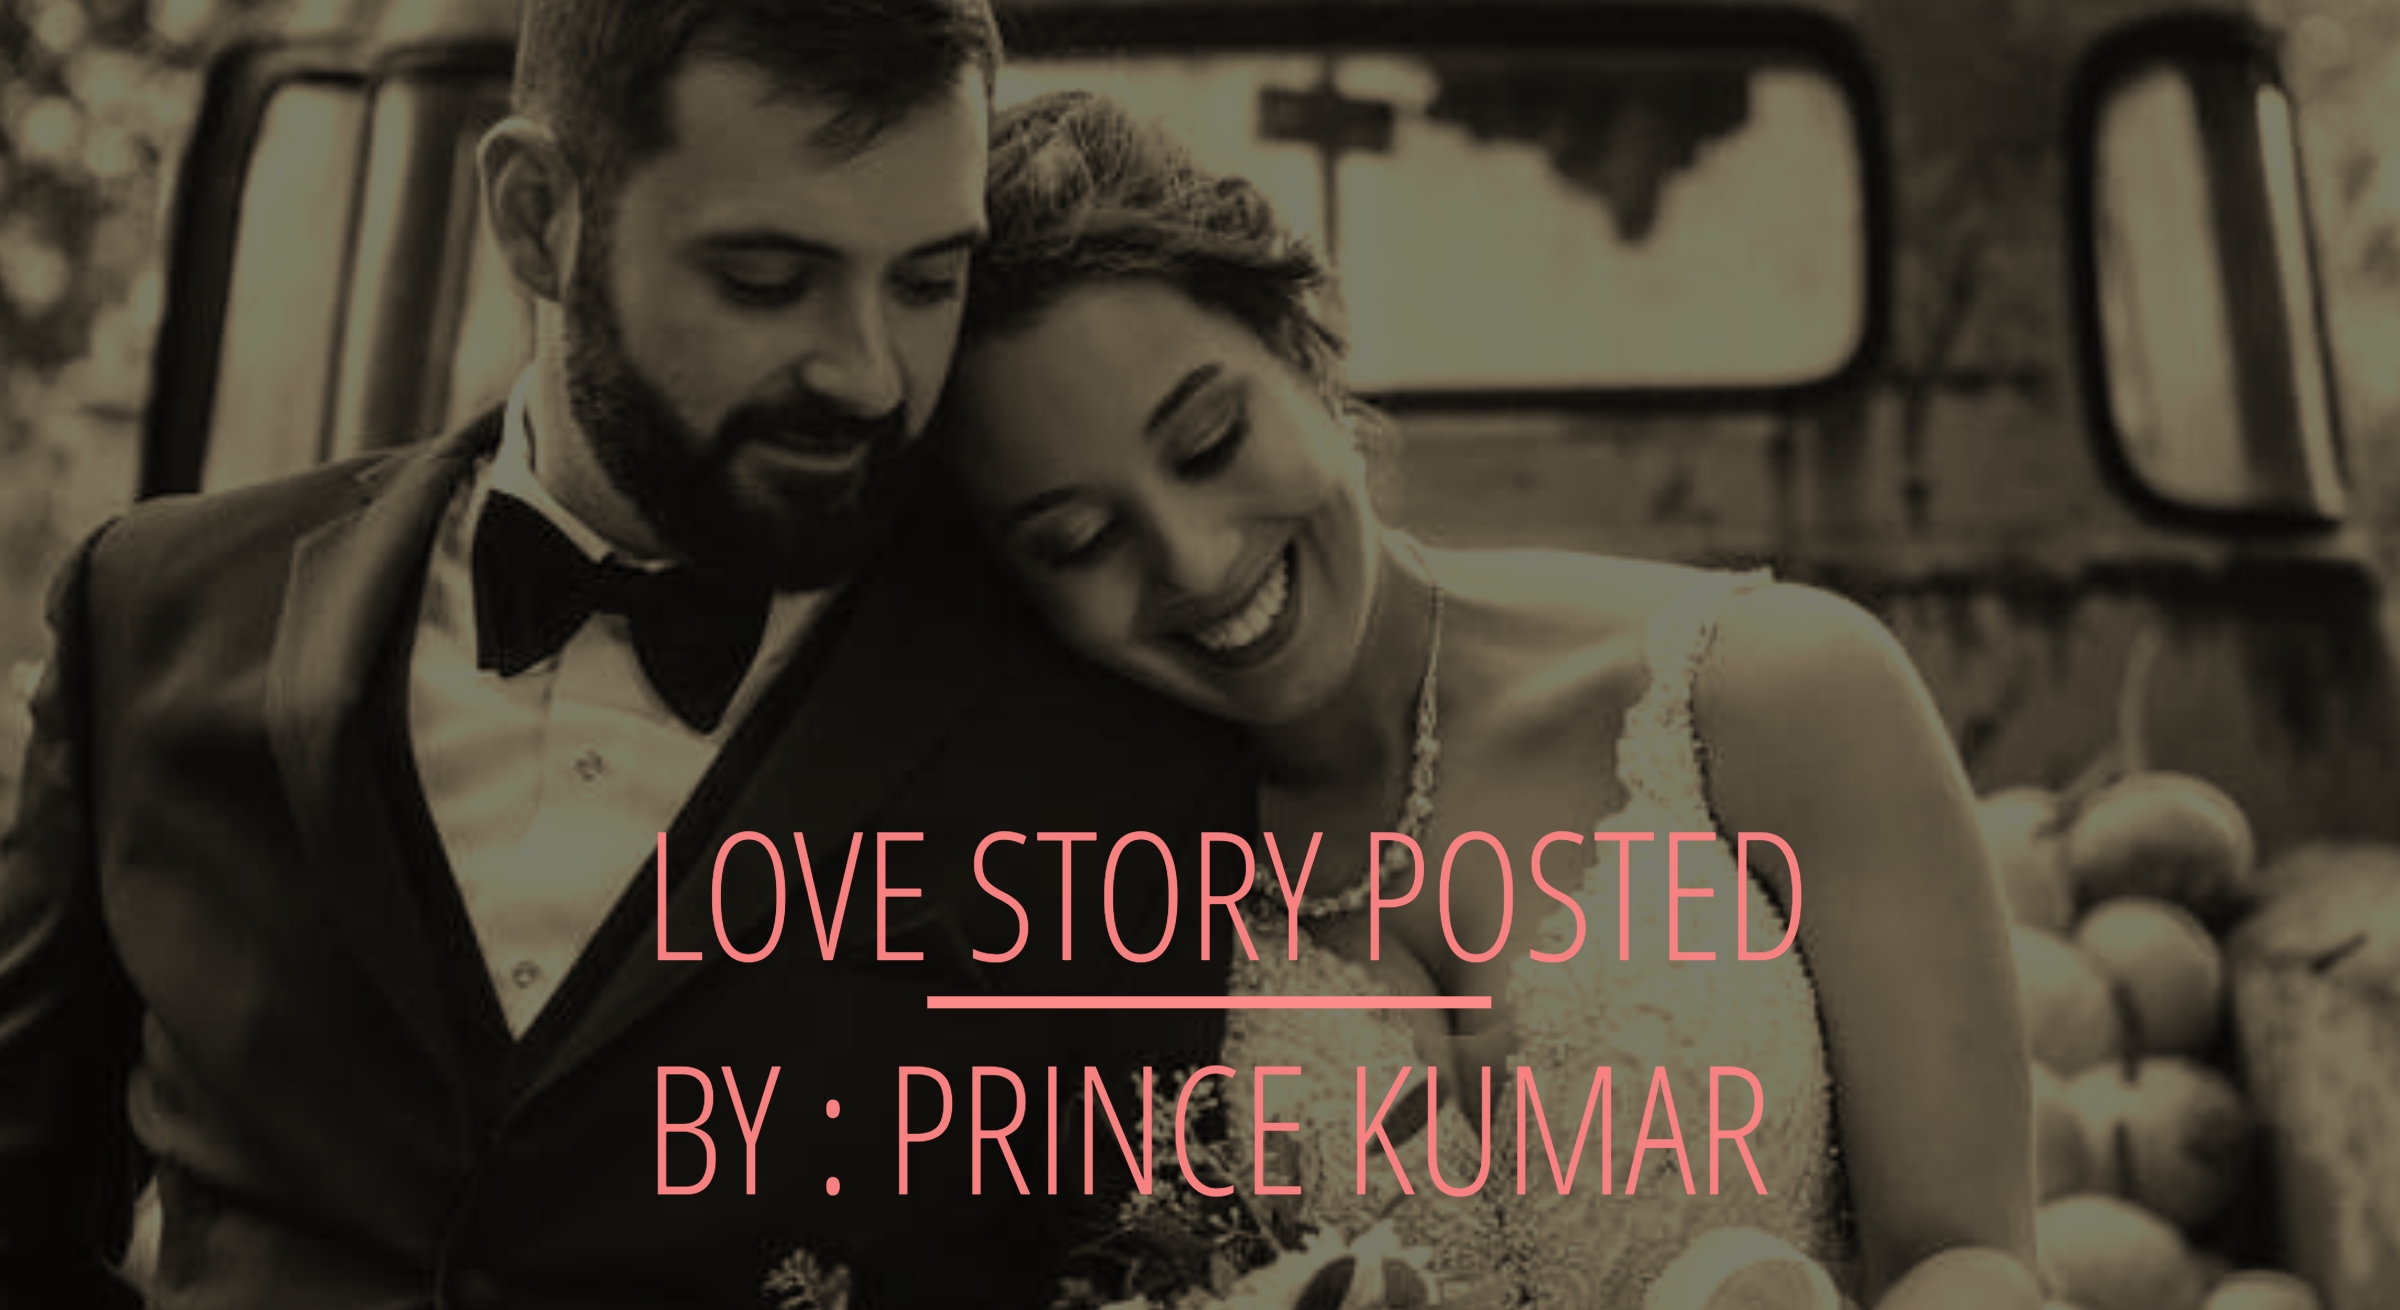 3. LOVE STORY POSTED BY PRINCE KUMAR